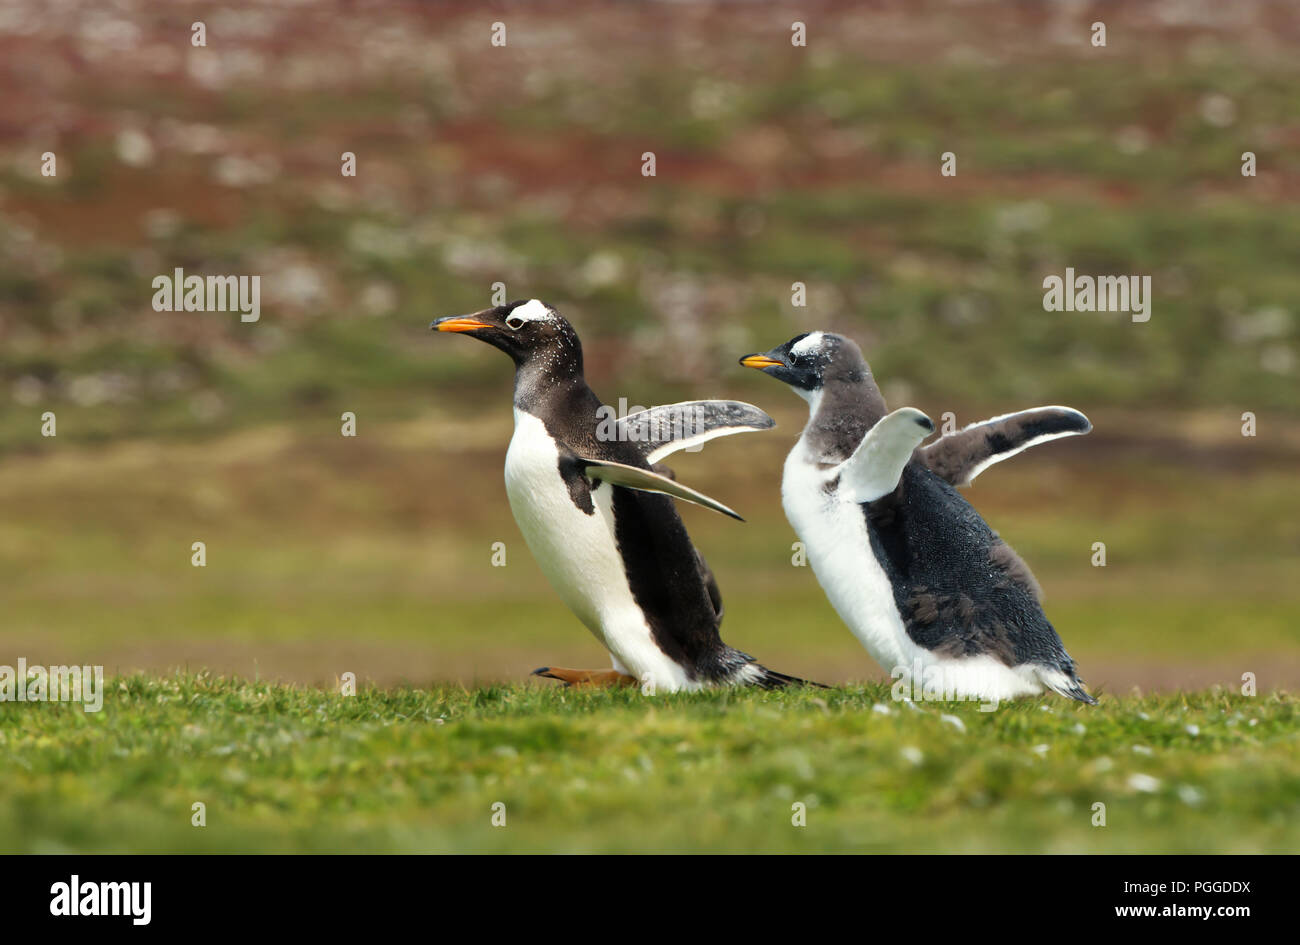 Gentoo penguin chick chasing its parent to be fed, Falkland islands. Interesting animal / bird behaviour in the wild. - Stock Image